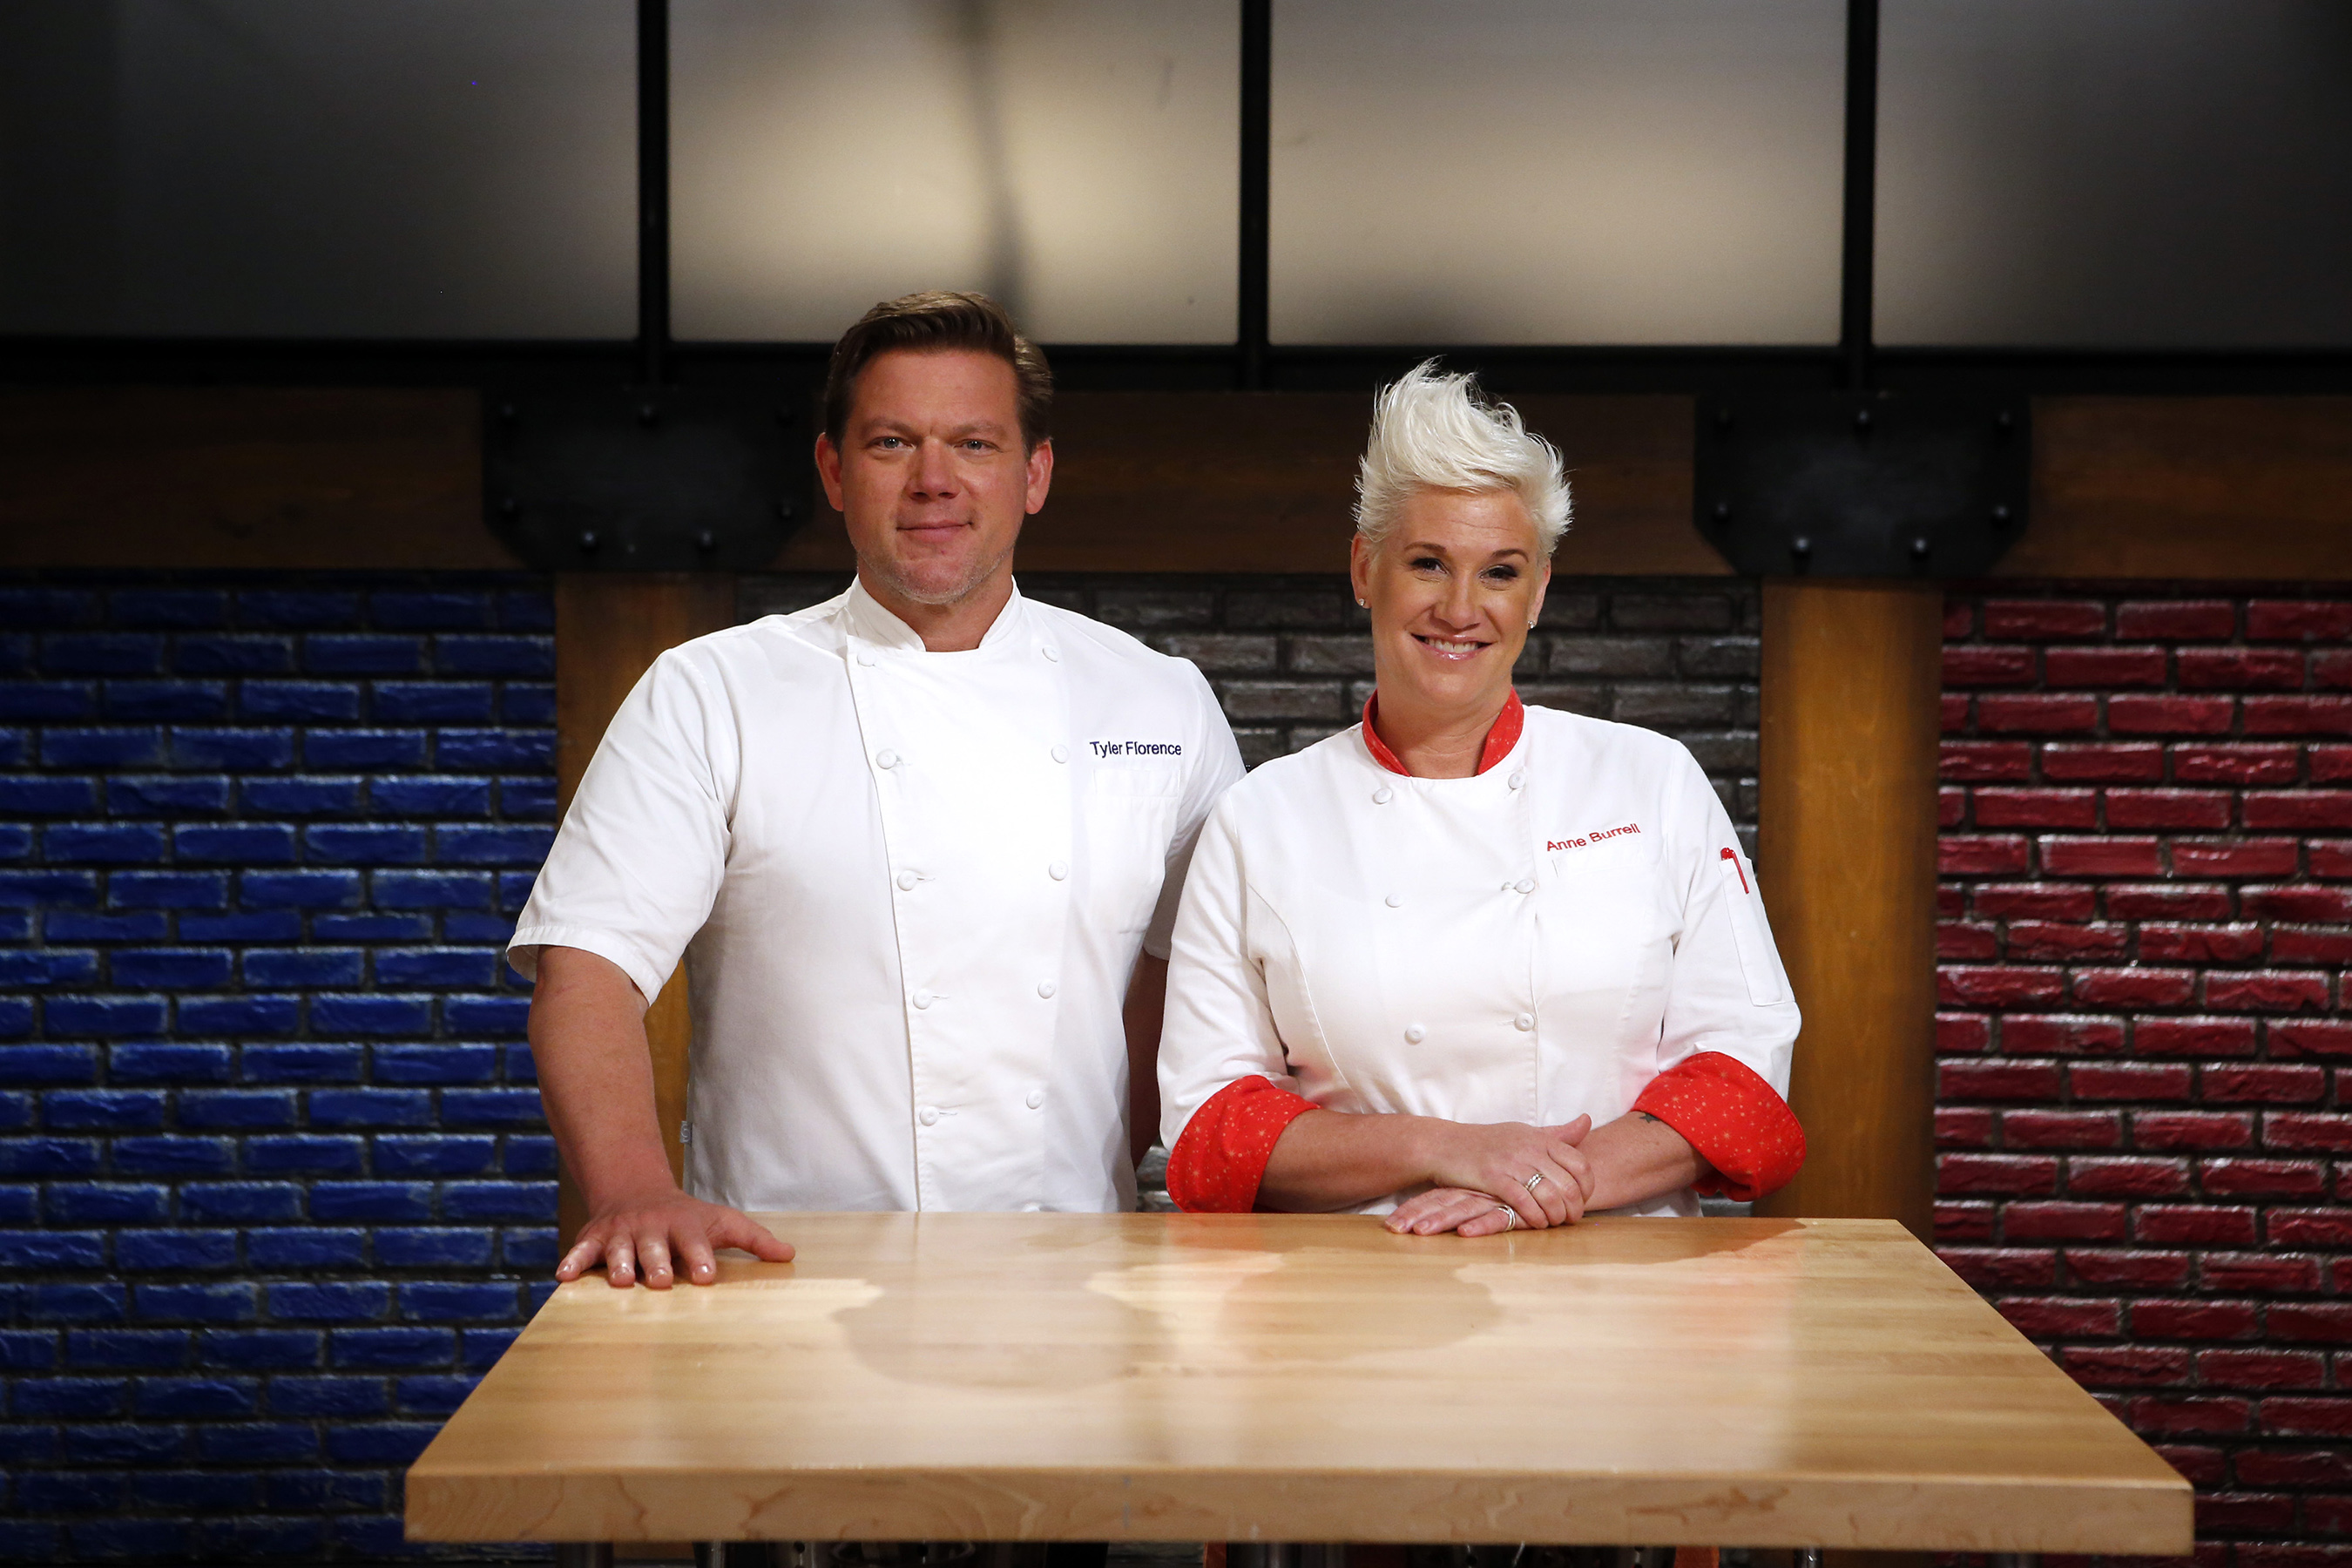 Hosts Tyler Florence and Anne Burrell of Food Network's Worst Cooks in America